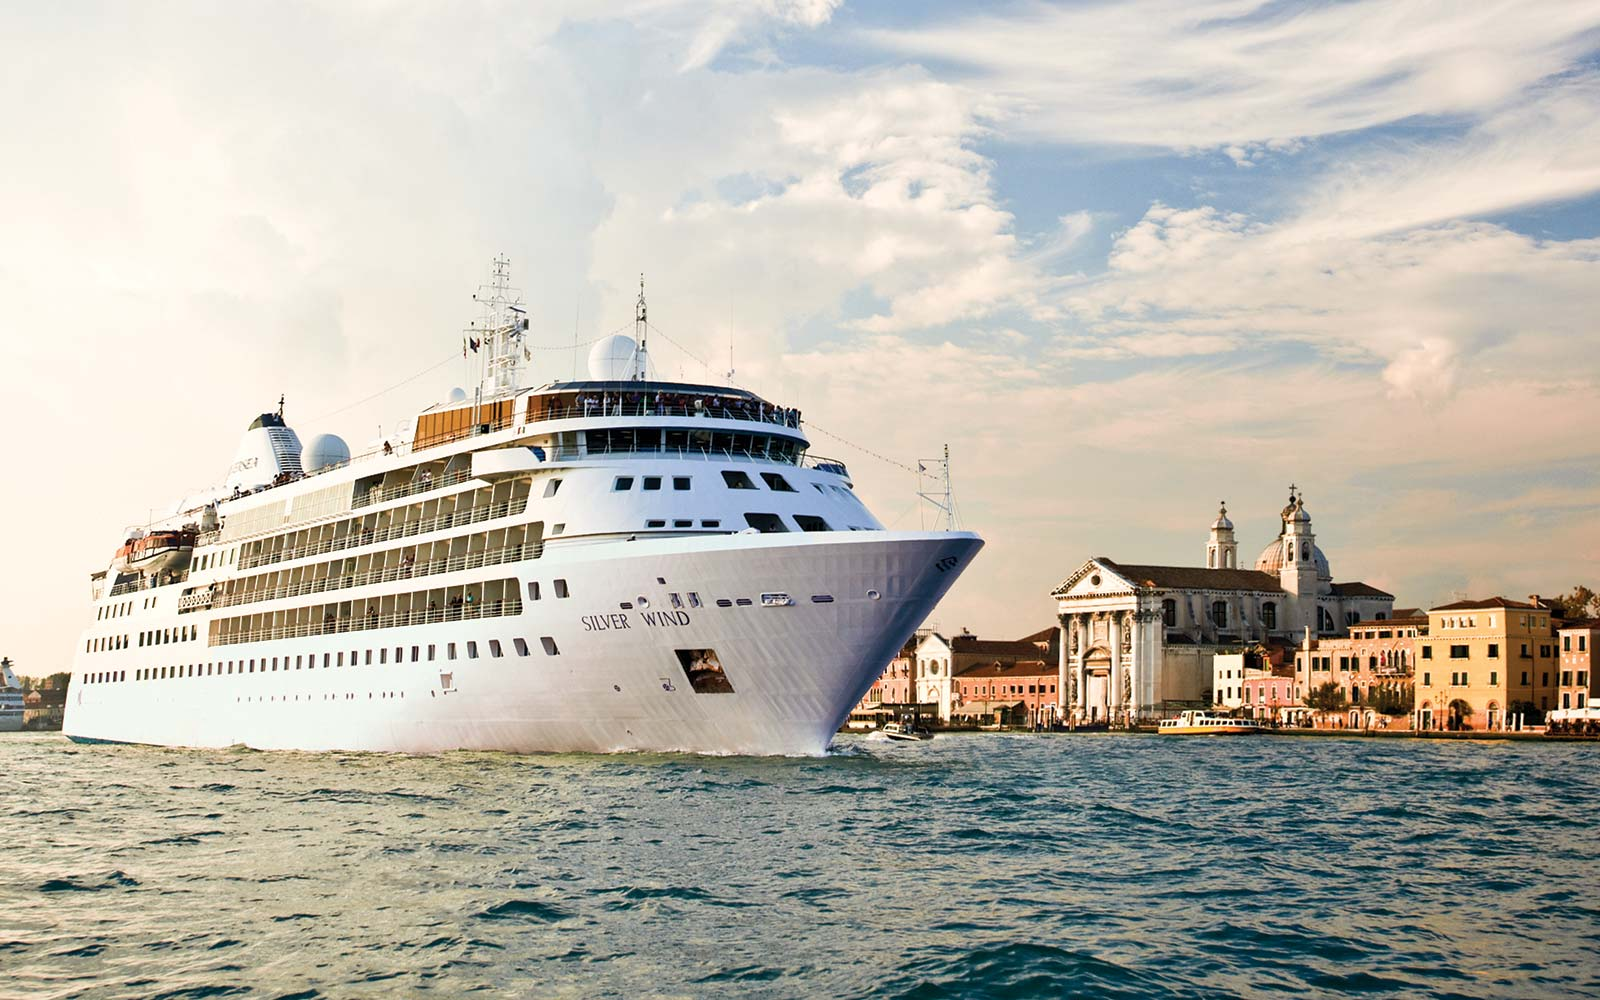 Five Things to Know About Silversea's Silver Wind Cruise Ship